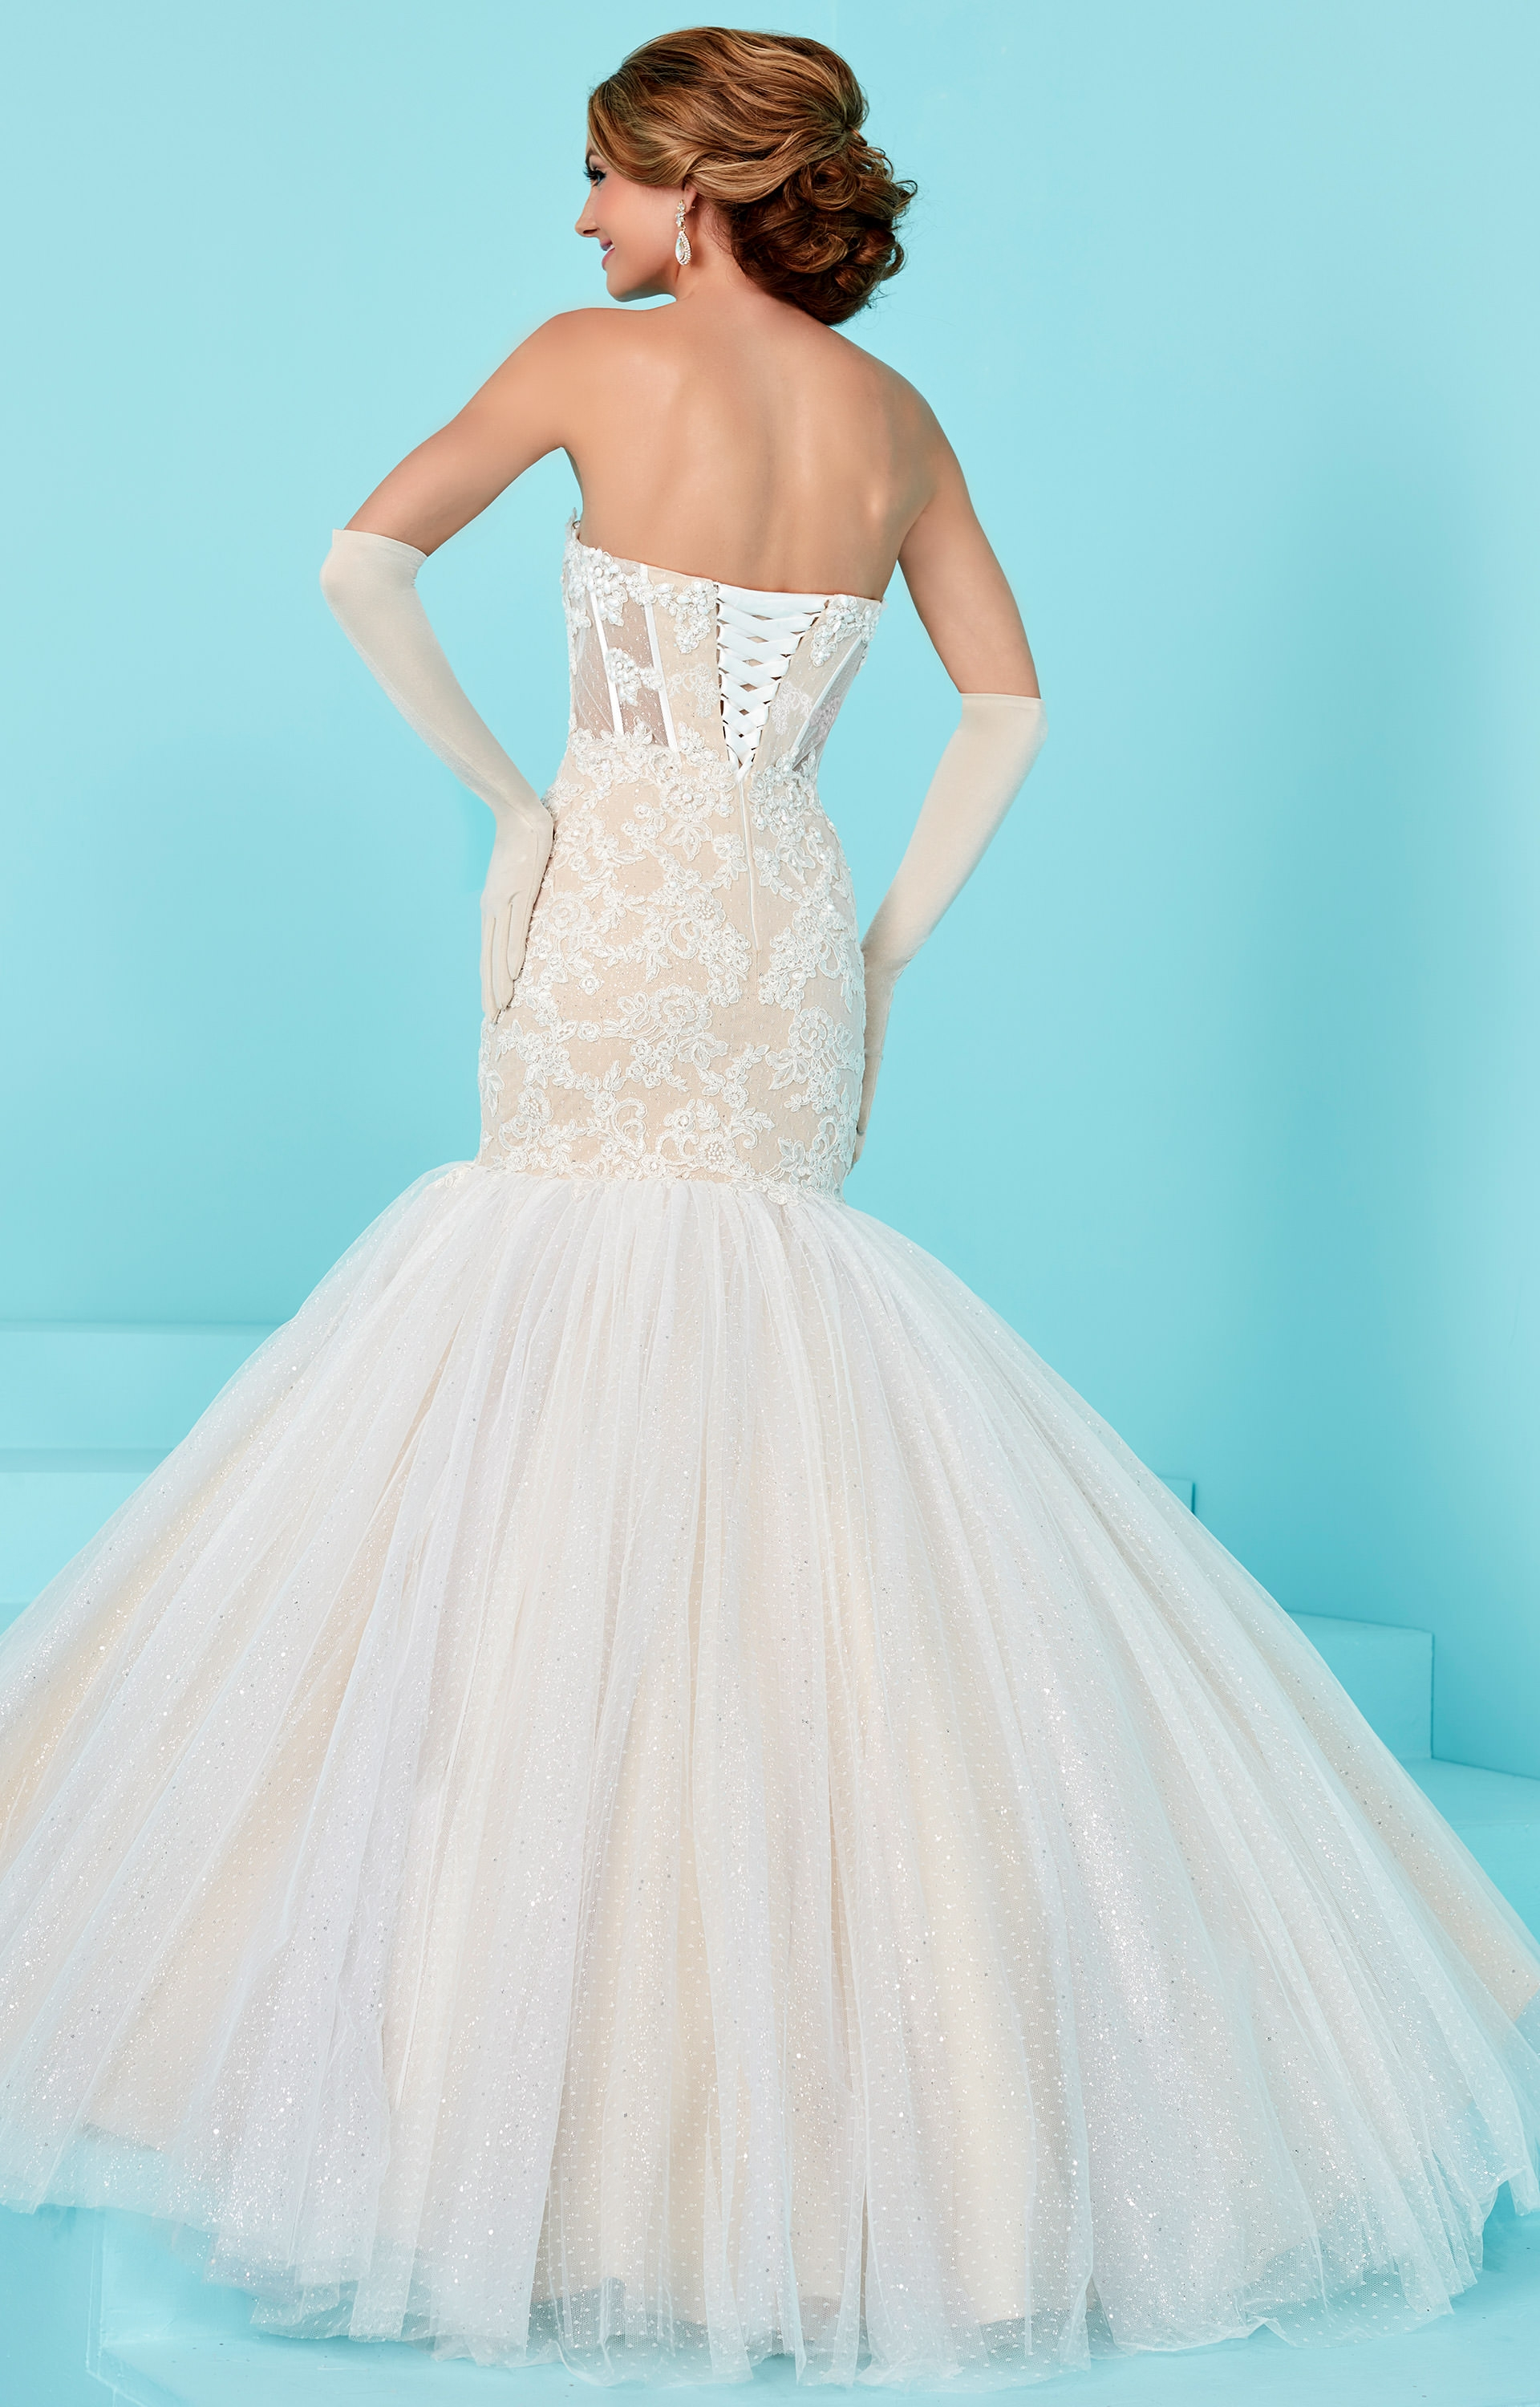 Tiffany Designs 16203 - Swiss Net and Lace Strapless Sweetheart ...